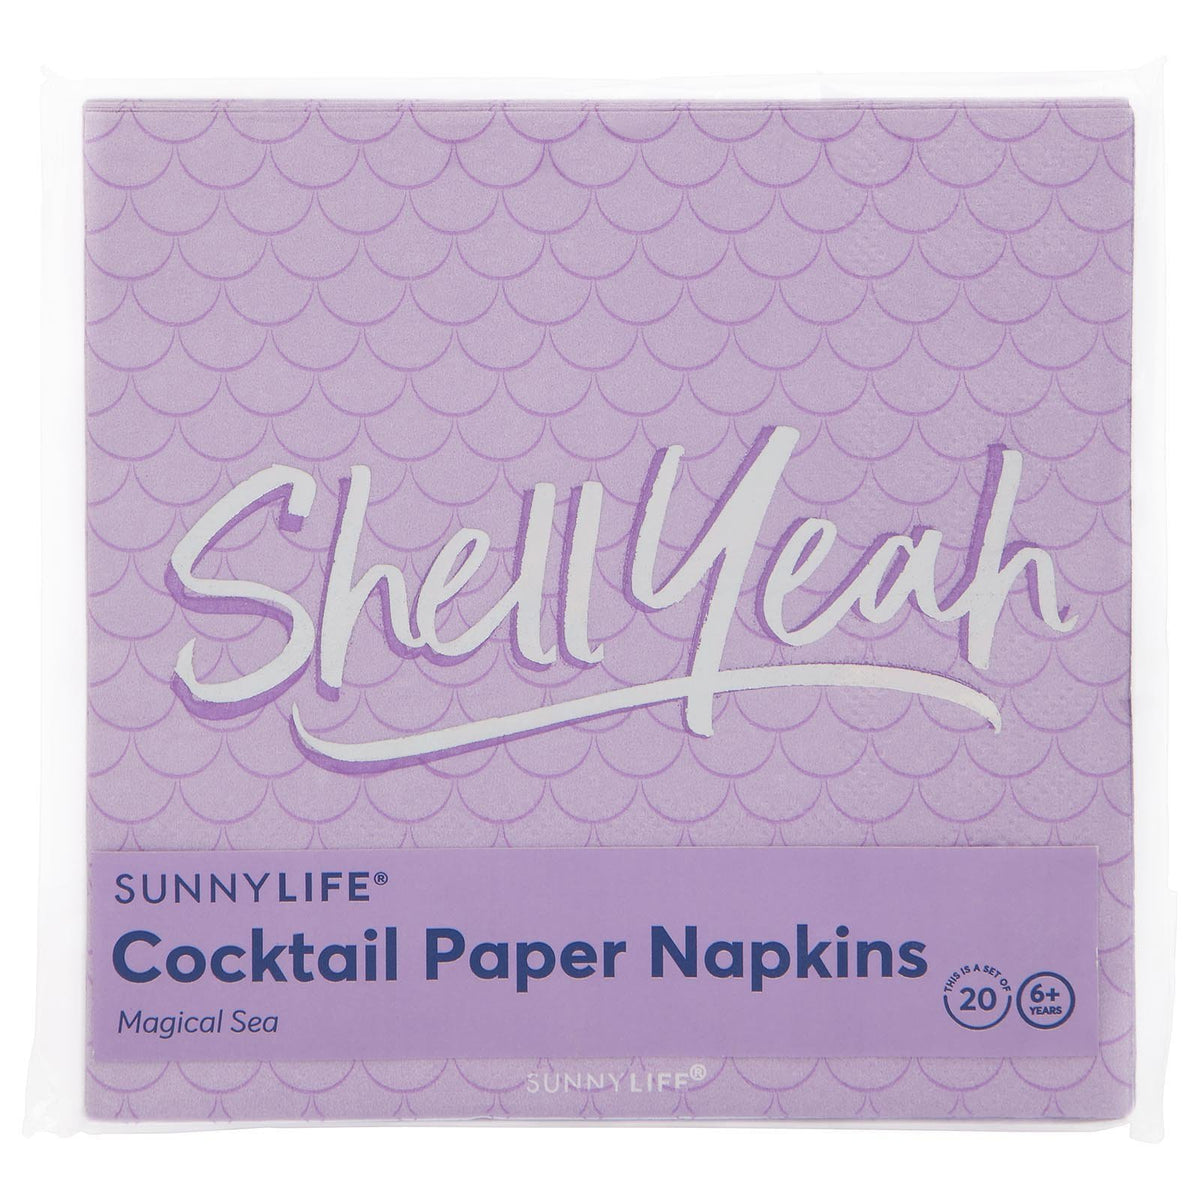 Sunnylife | Cocktail Paper Napkins | Magical Sea